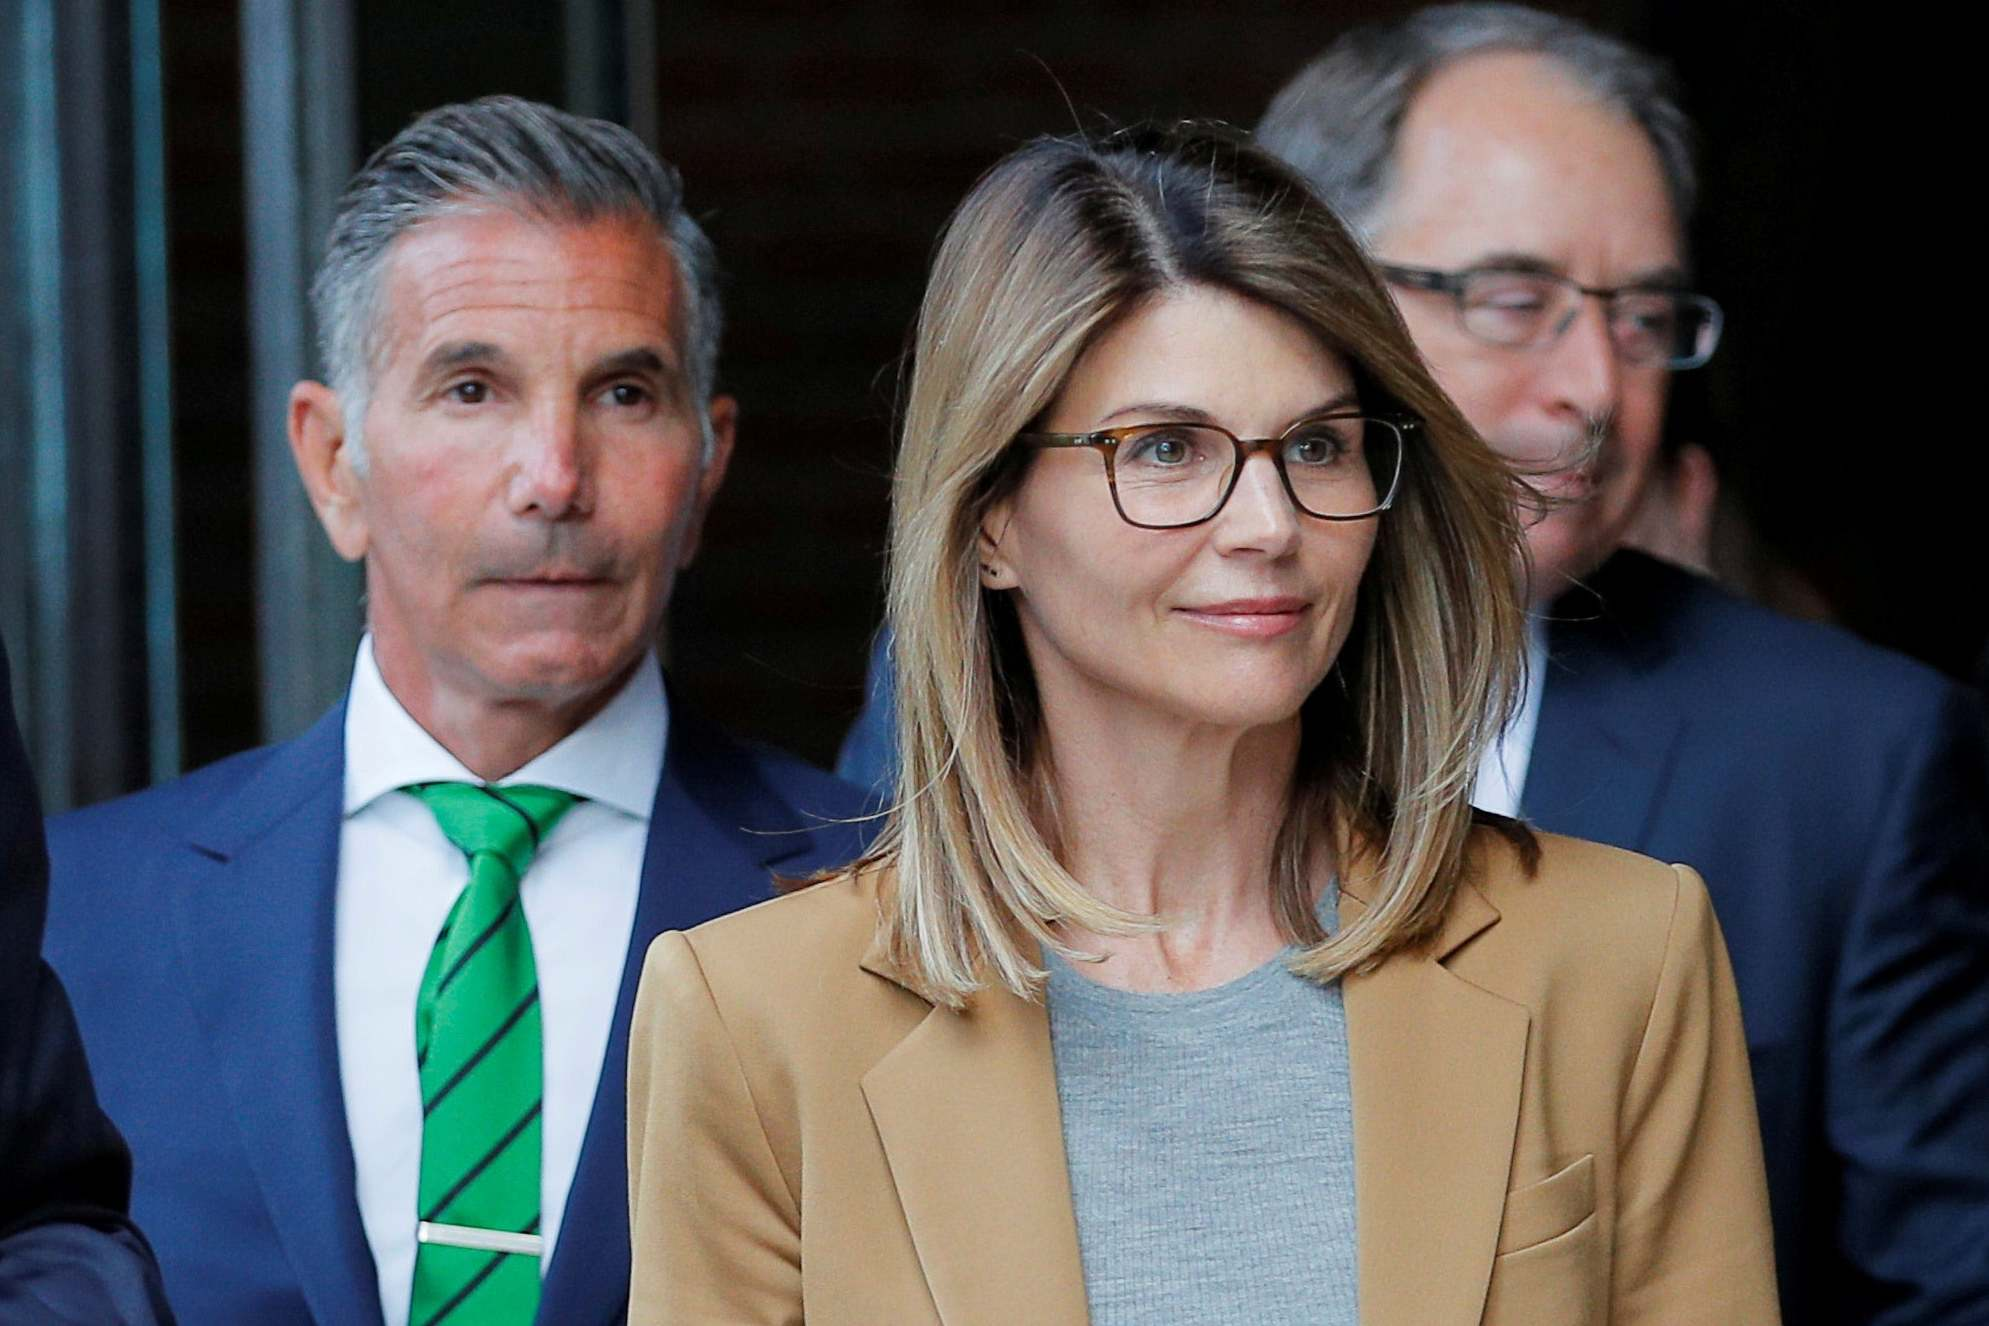 Lori Loughlin launched after serving jail term for faculty bribes scam